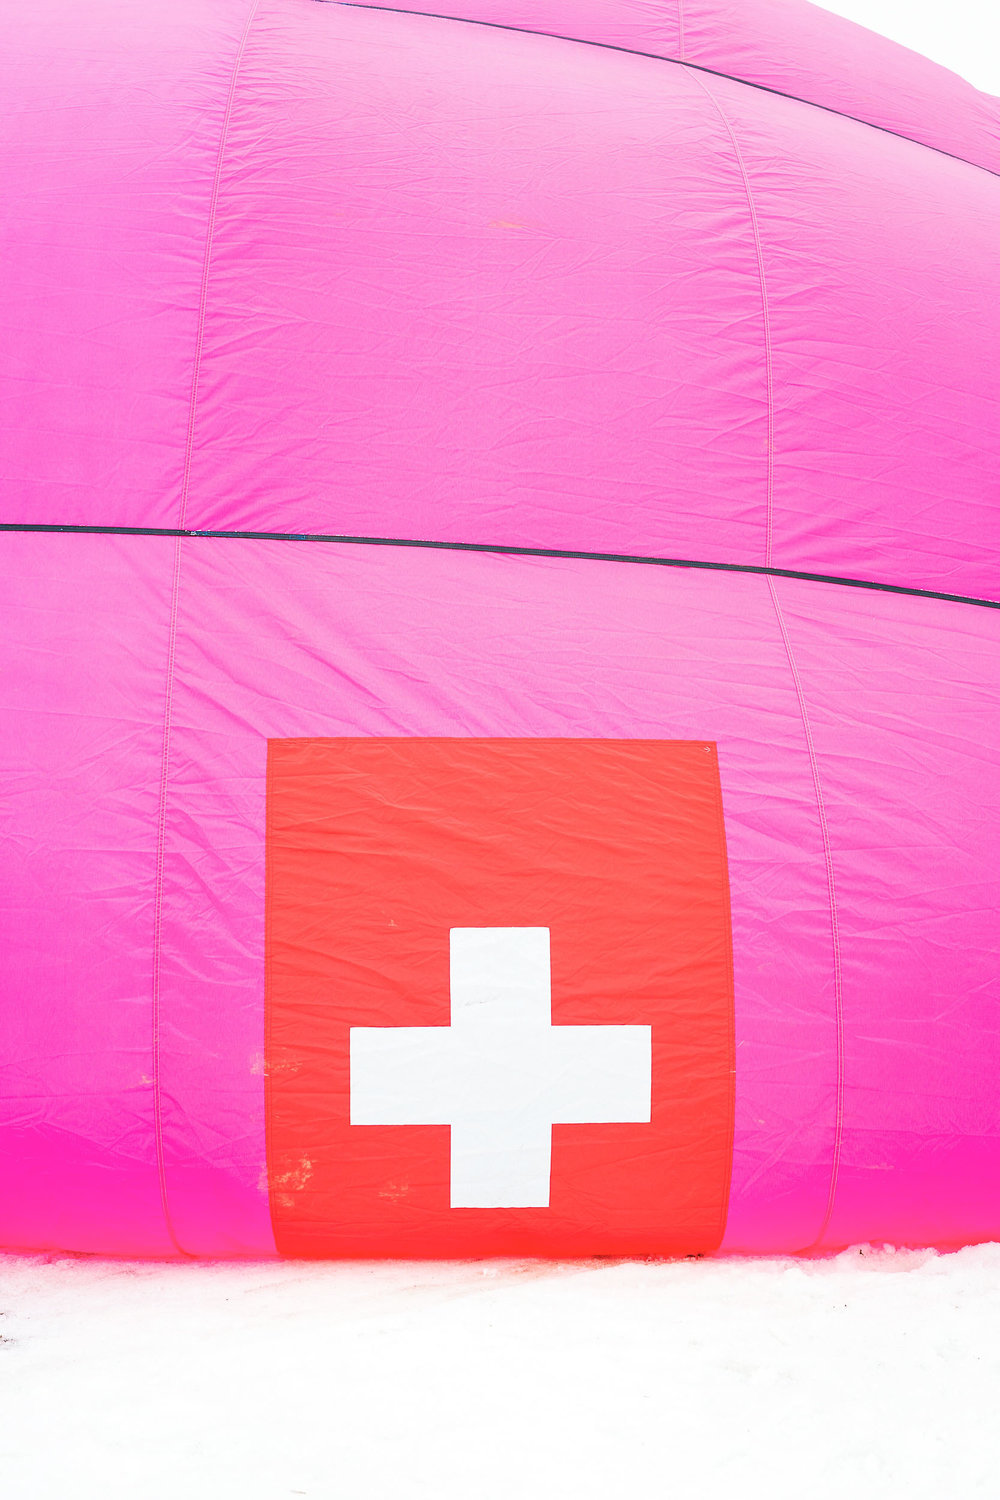 A swiss flag hot air balloon